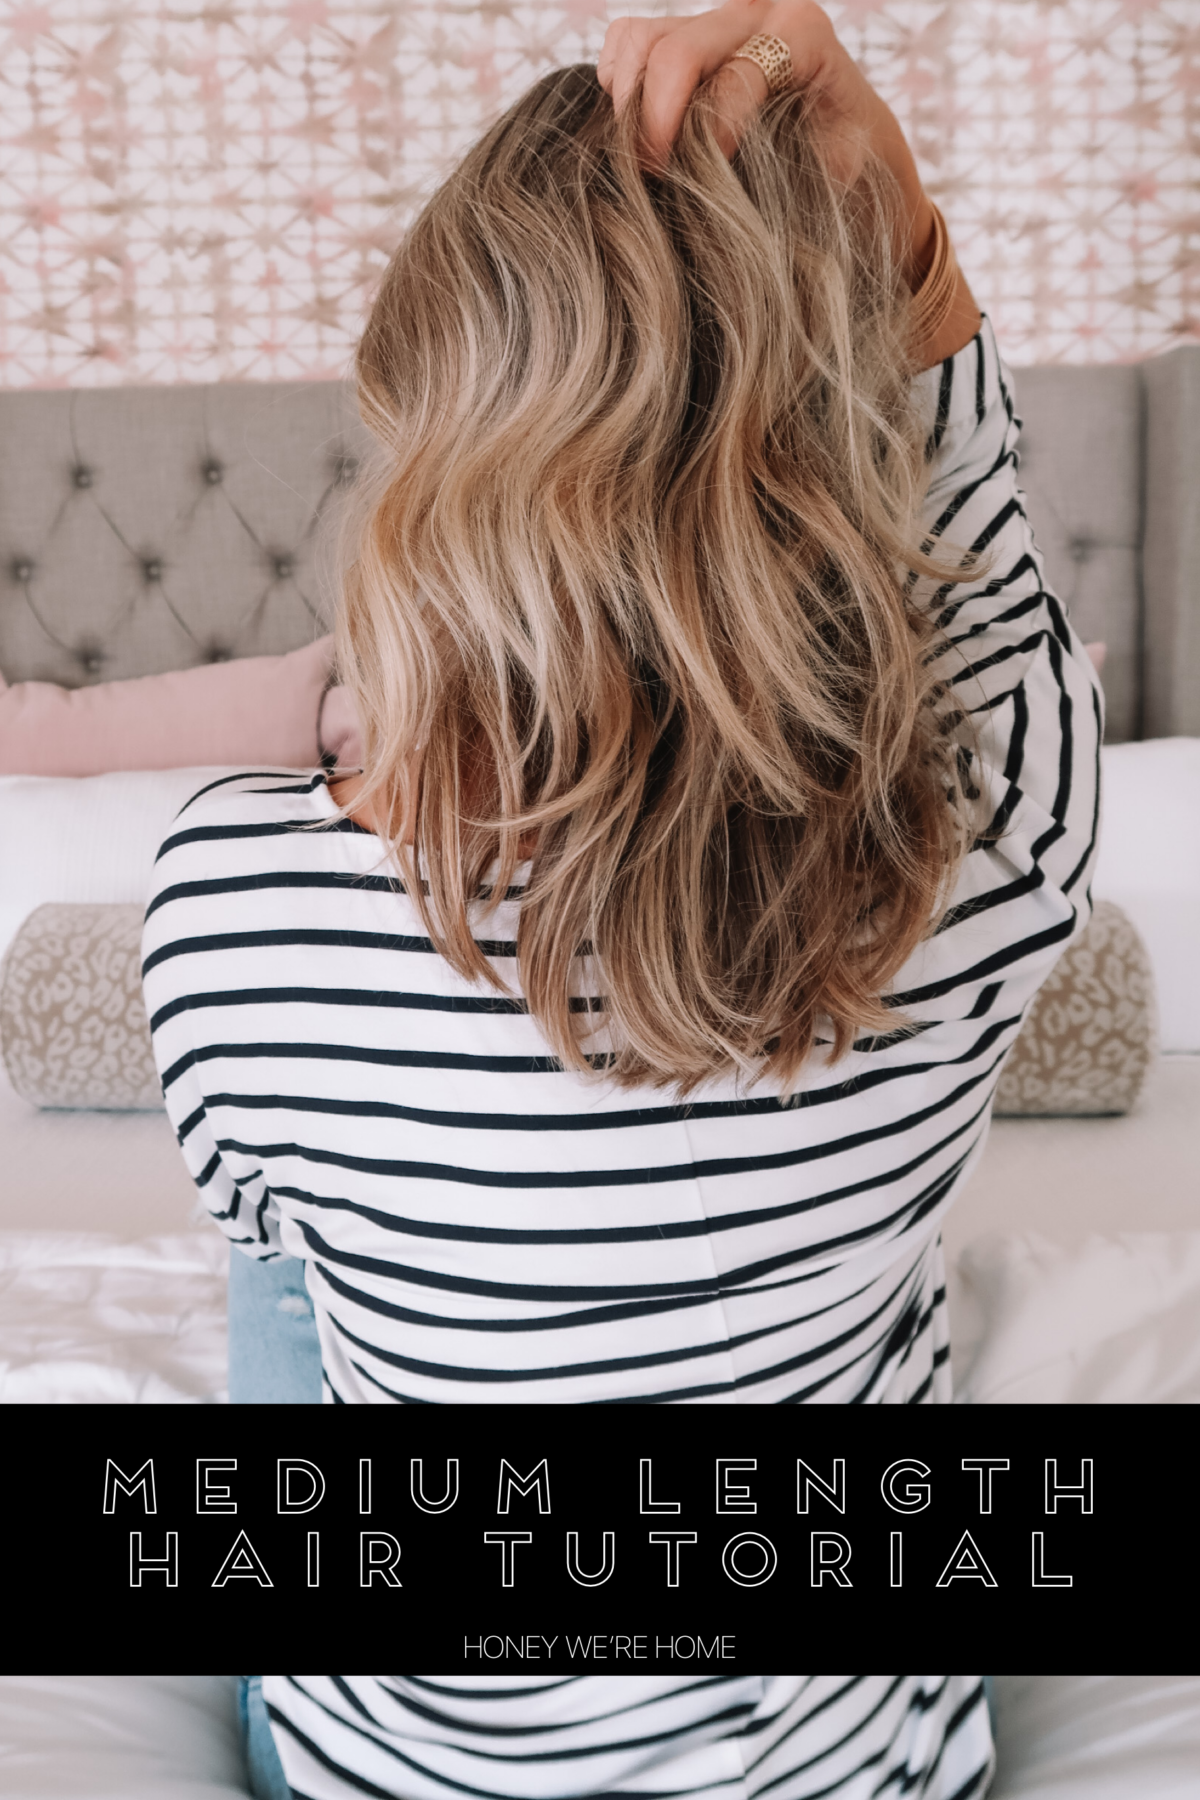 Medium Length Hair tutorial